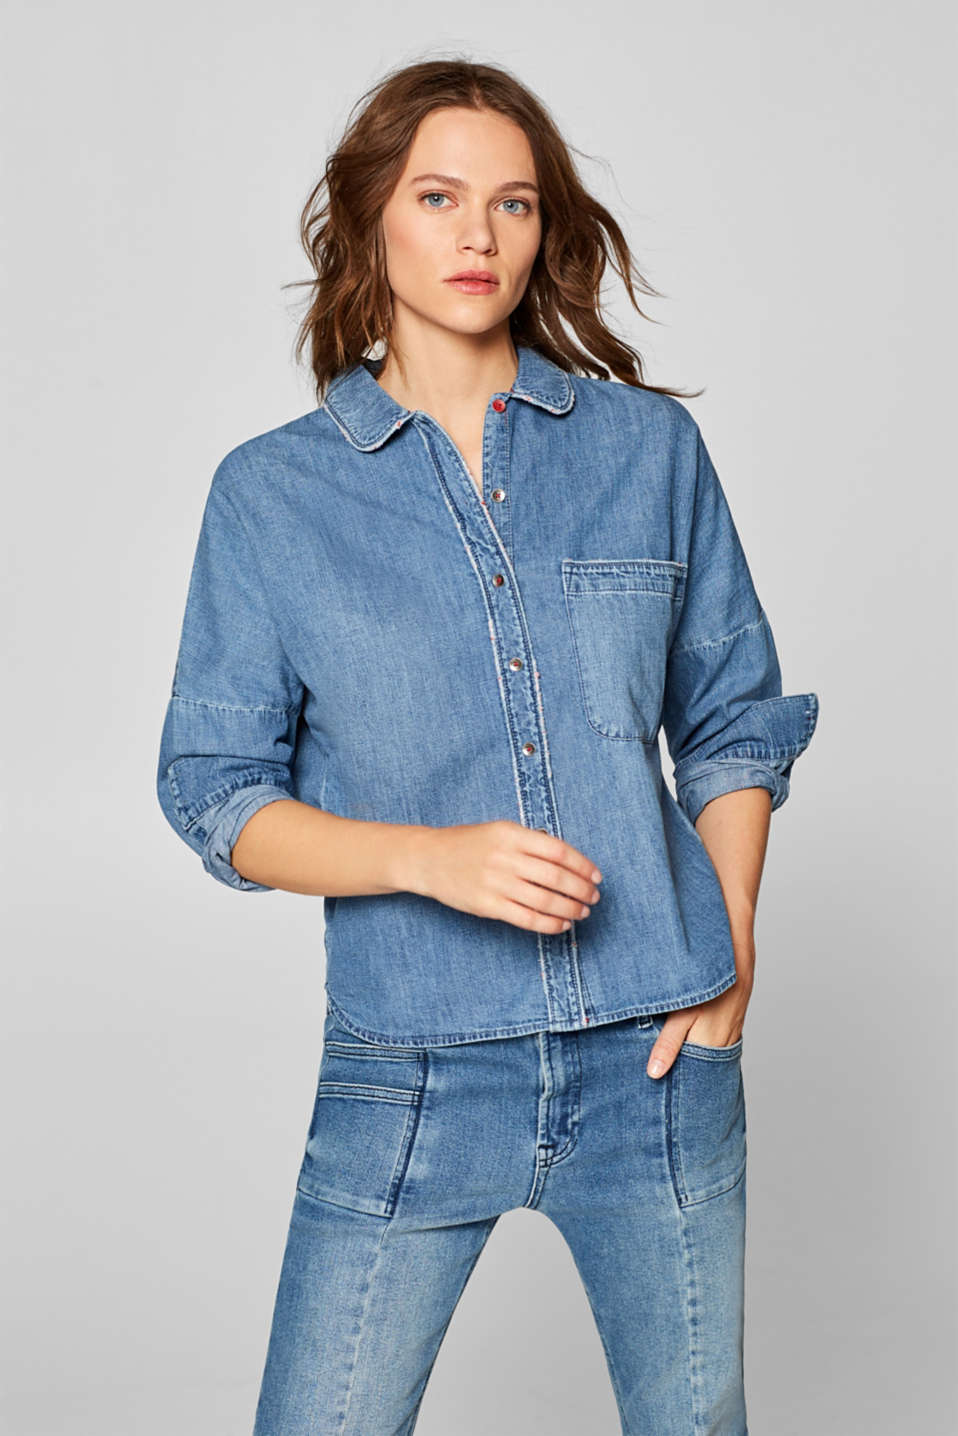 Esprit - Denim shirt with vintage effects, 100% cotton